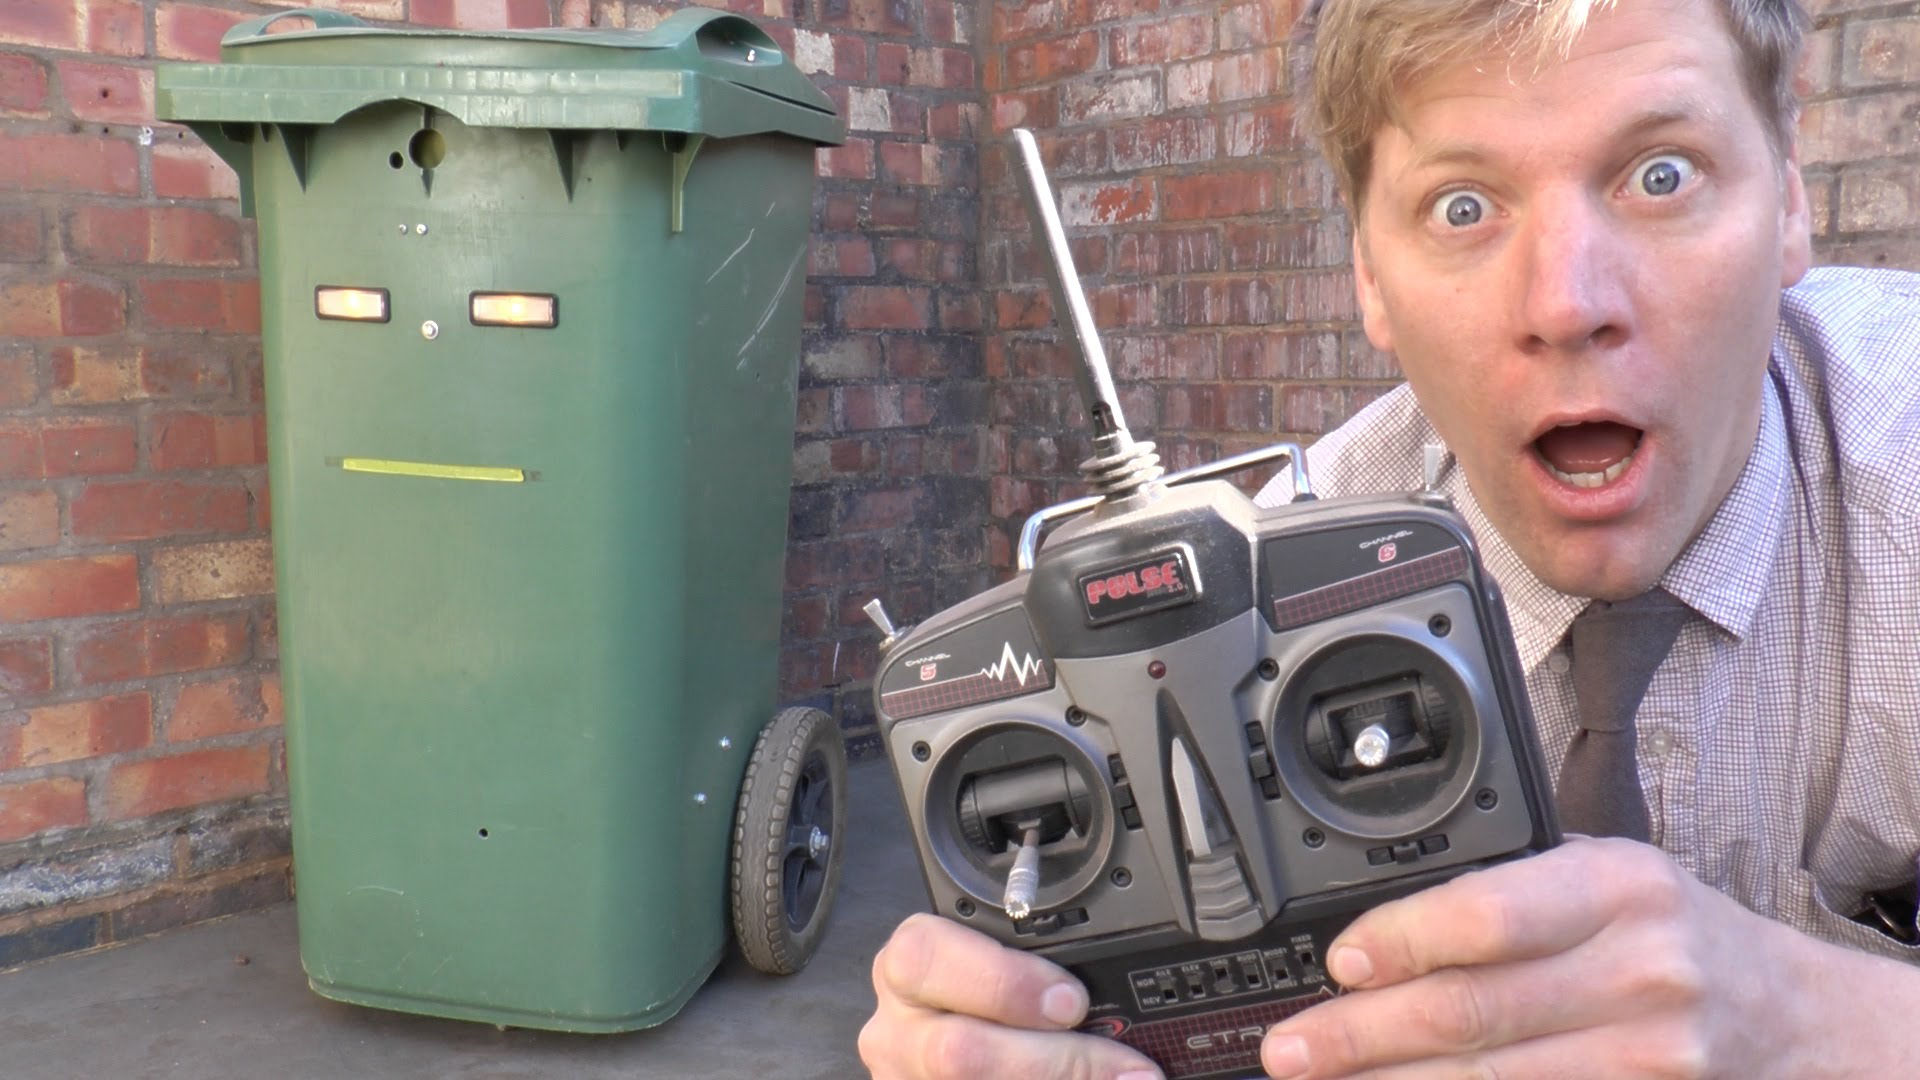 Inventor Colin Furze Builds A Remote Controlled Garbage